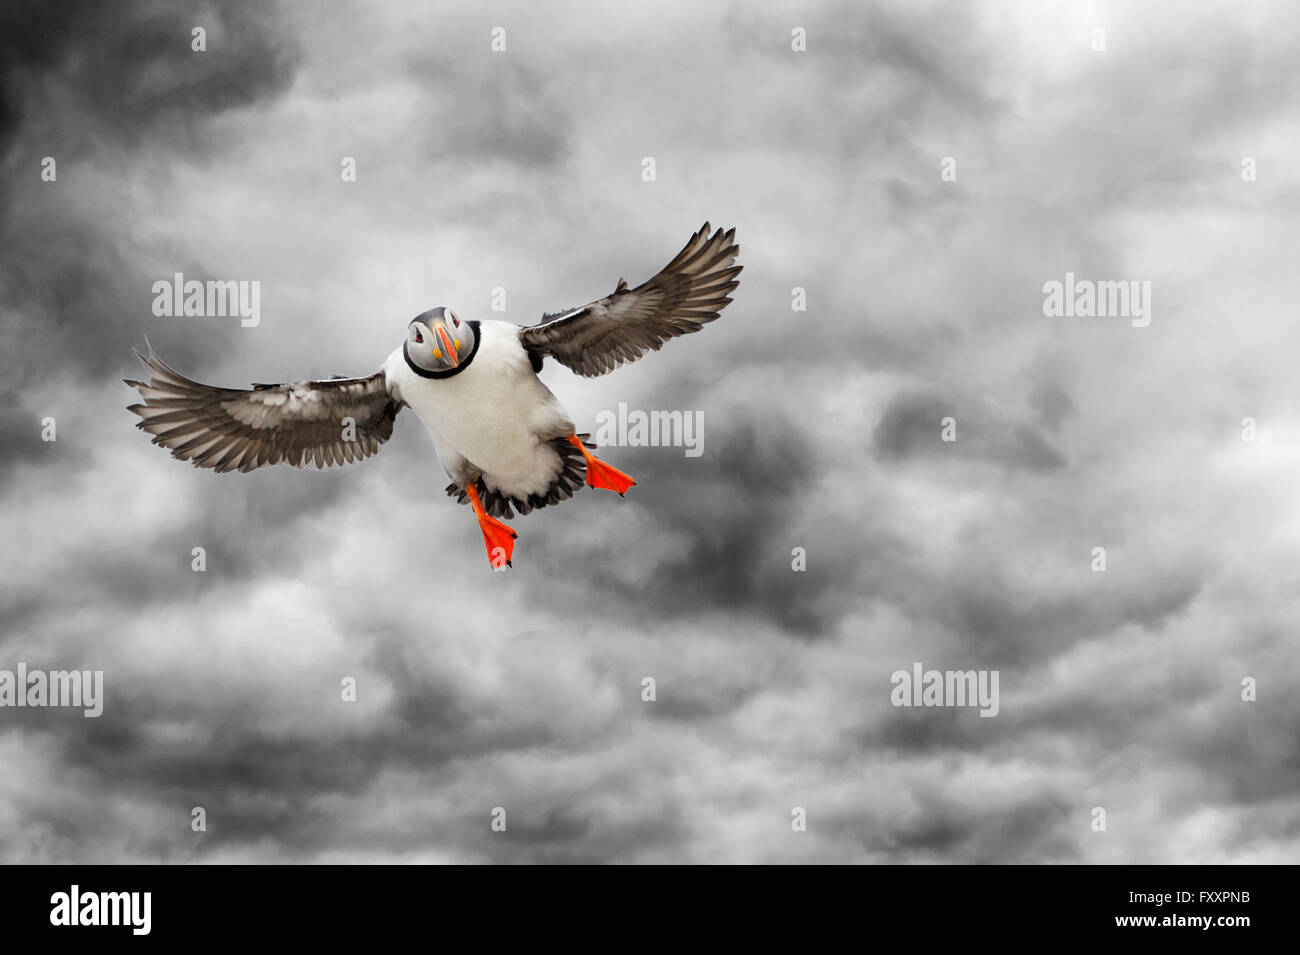 Atlantic Puffin (Fratercula arctica) flying against dark cloudy overcast sky, Varanger penninsula, Norway. - Stock Image